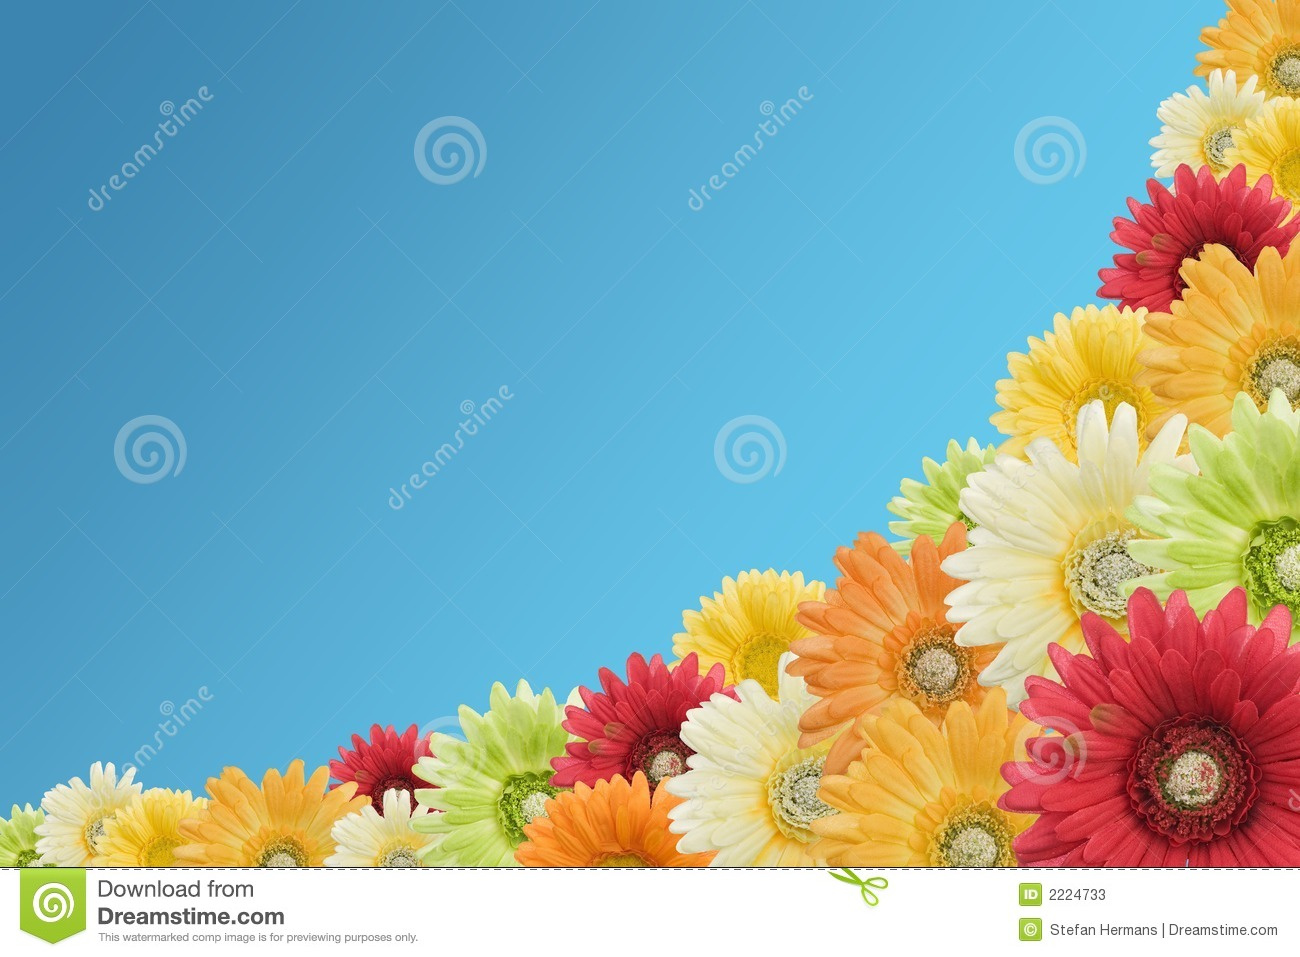 Floral background on a blue background made with artificial flowers